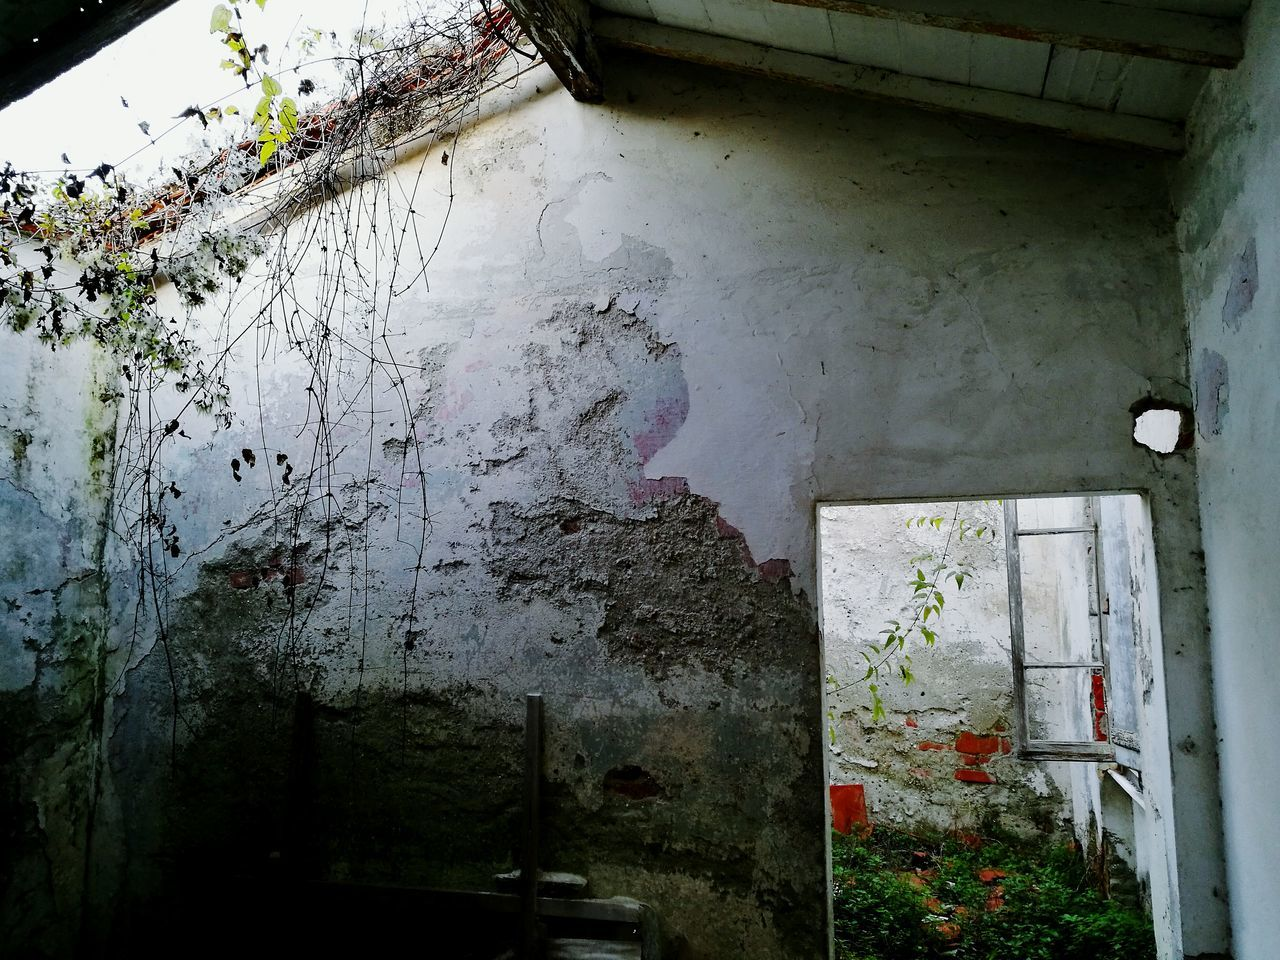 Window Drop No People Damaged Destruction Tree Indoors  Day Water Nature Urbanphotography Desolate Scene Abandoned House